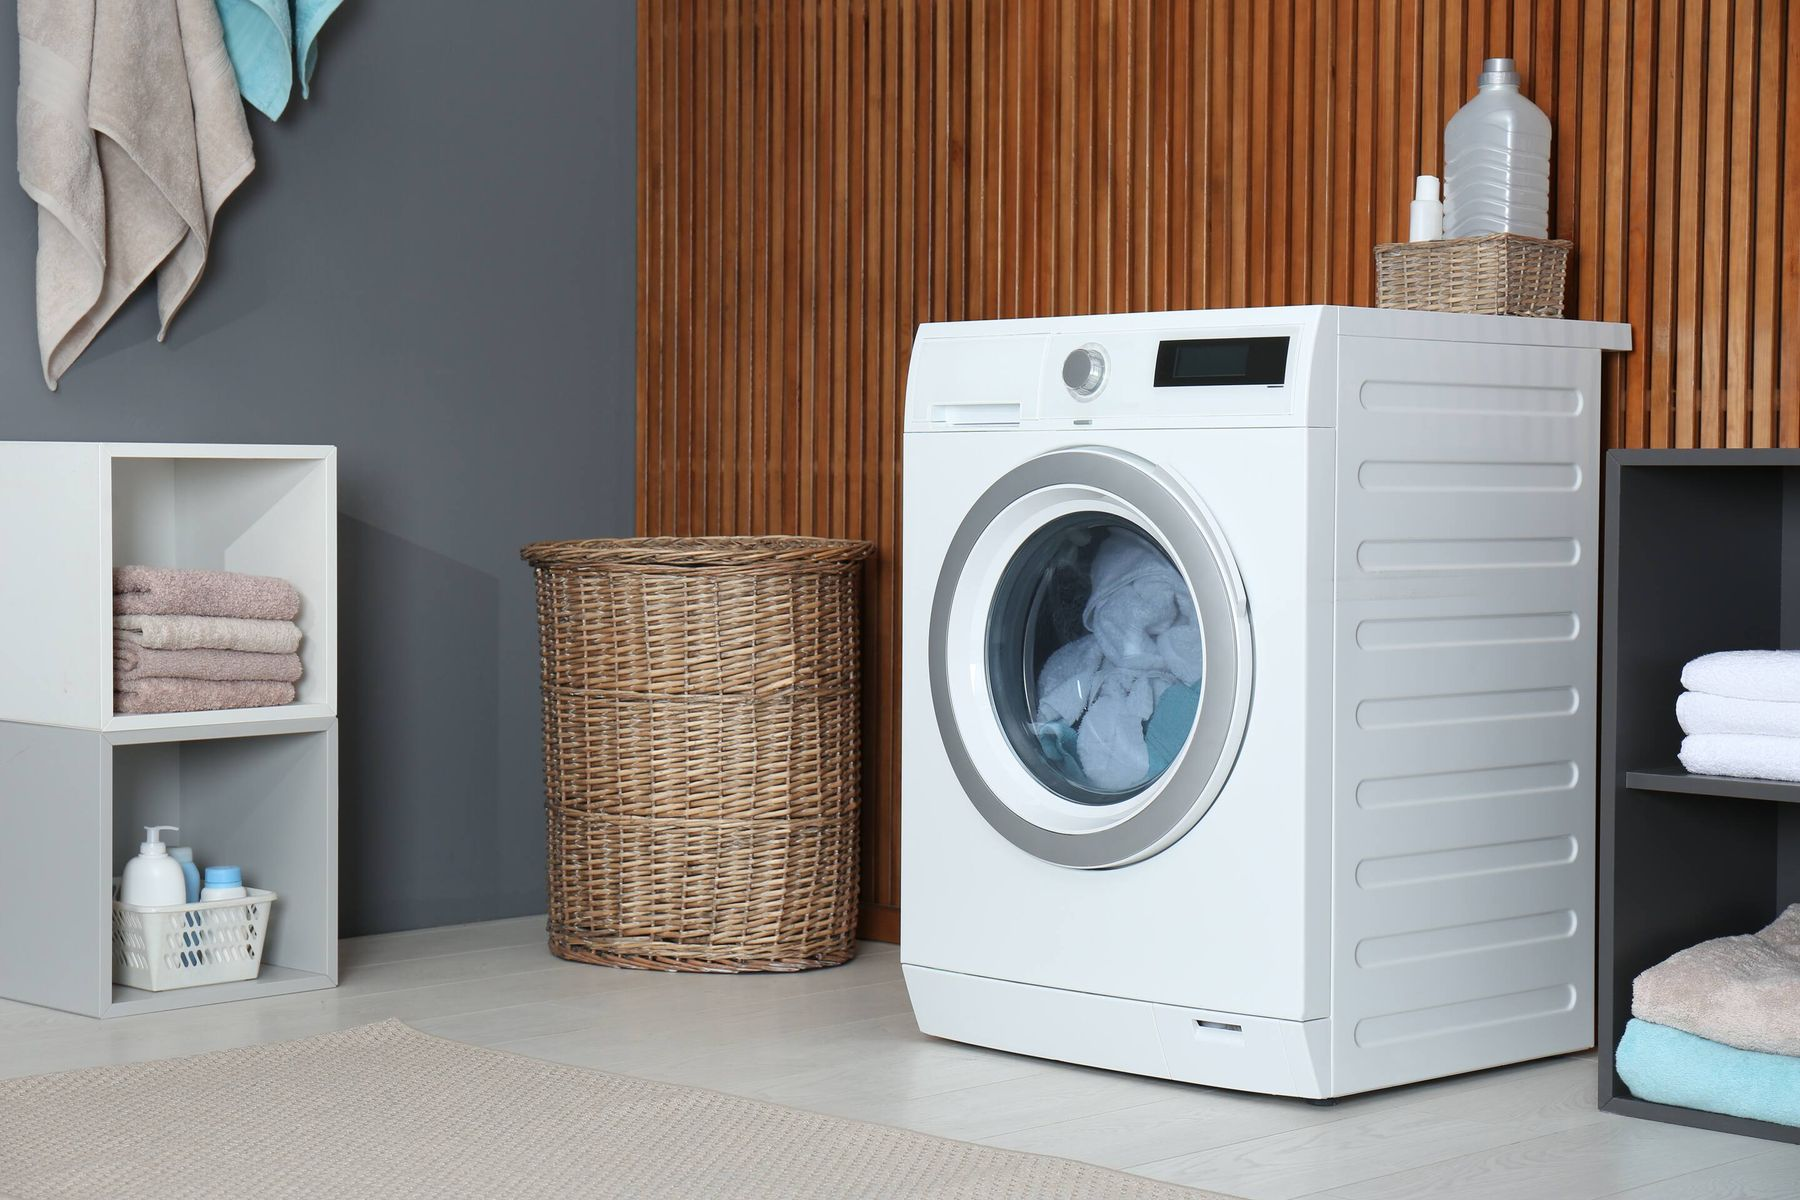 Tired of the Odour in Your Washing Machine? Try These Amazing Tips